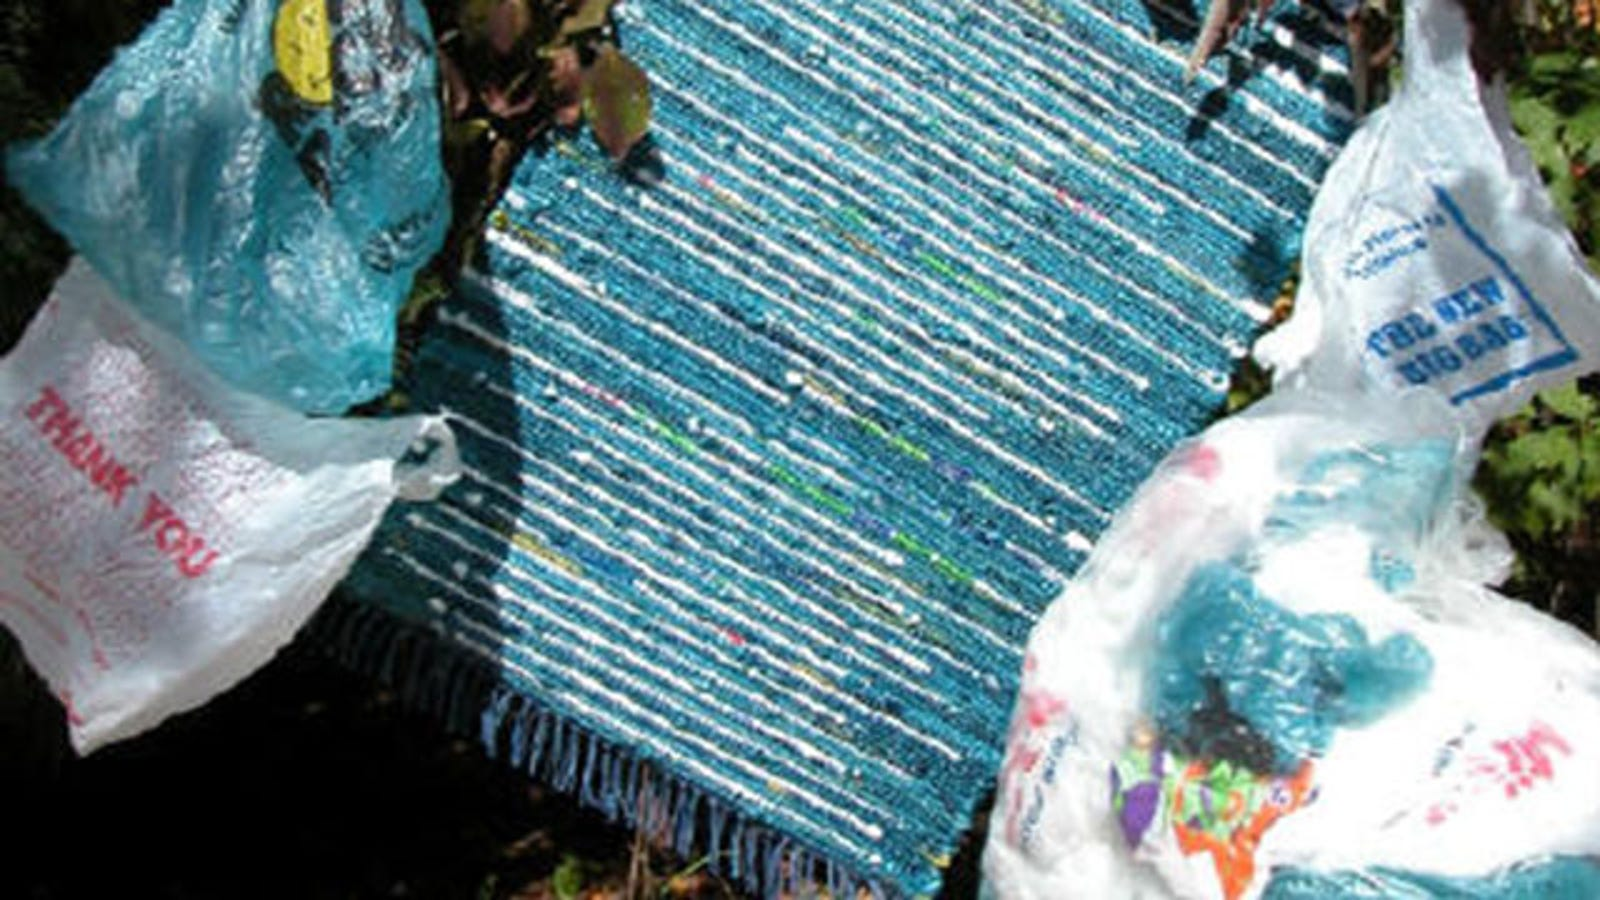 Make An Actual Usable Rug Out Of Plastic Bags